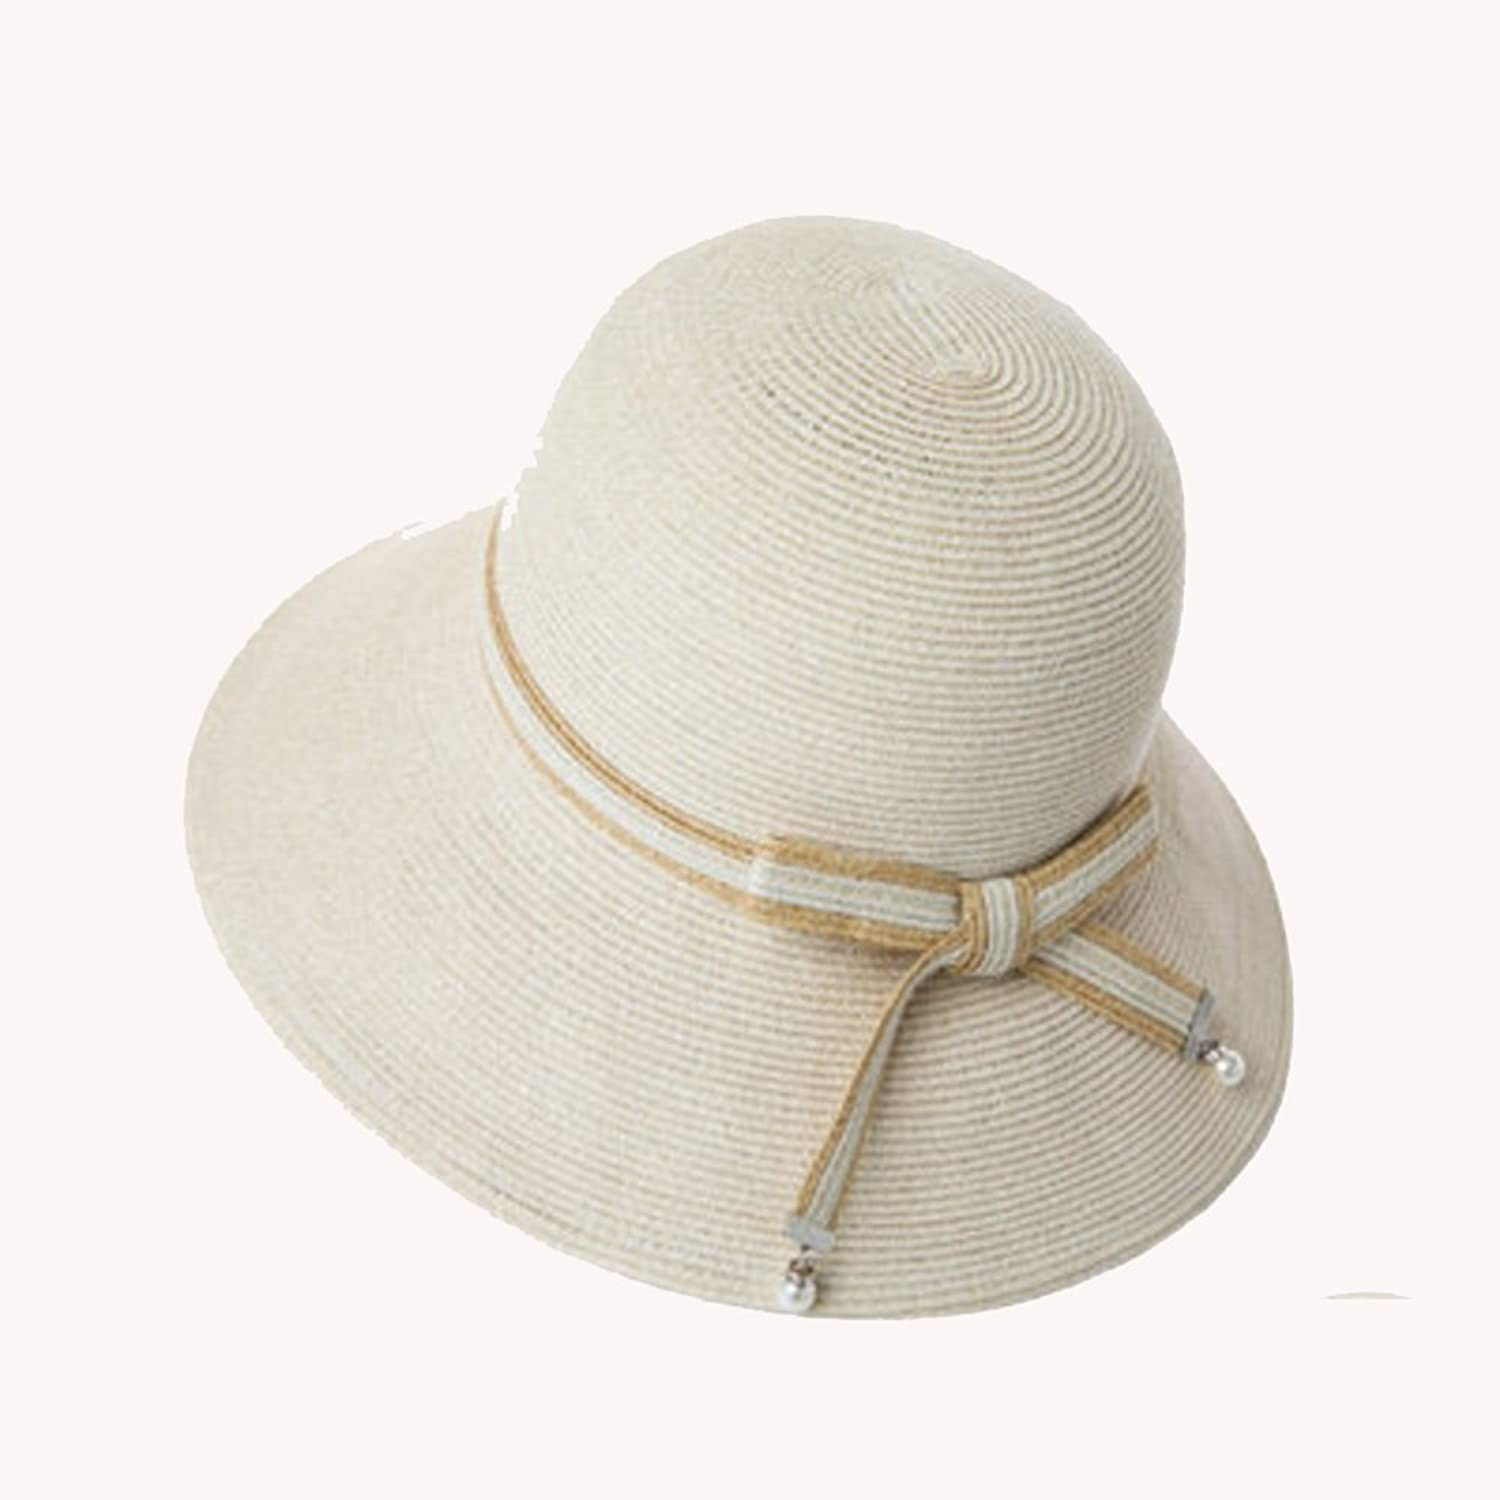 NAN Liang Hat Female Summer Beach Hat Korean Wild Straw Sun Hat Travel Holiday Sun Shade Folding Straw Hat Beige Black White (color   White)